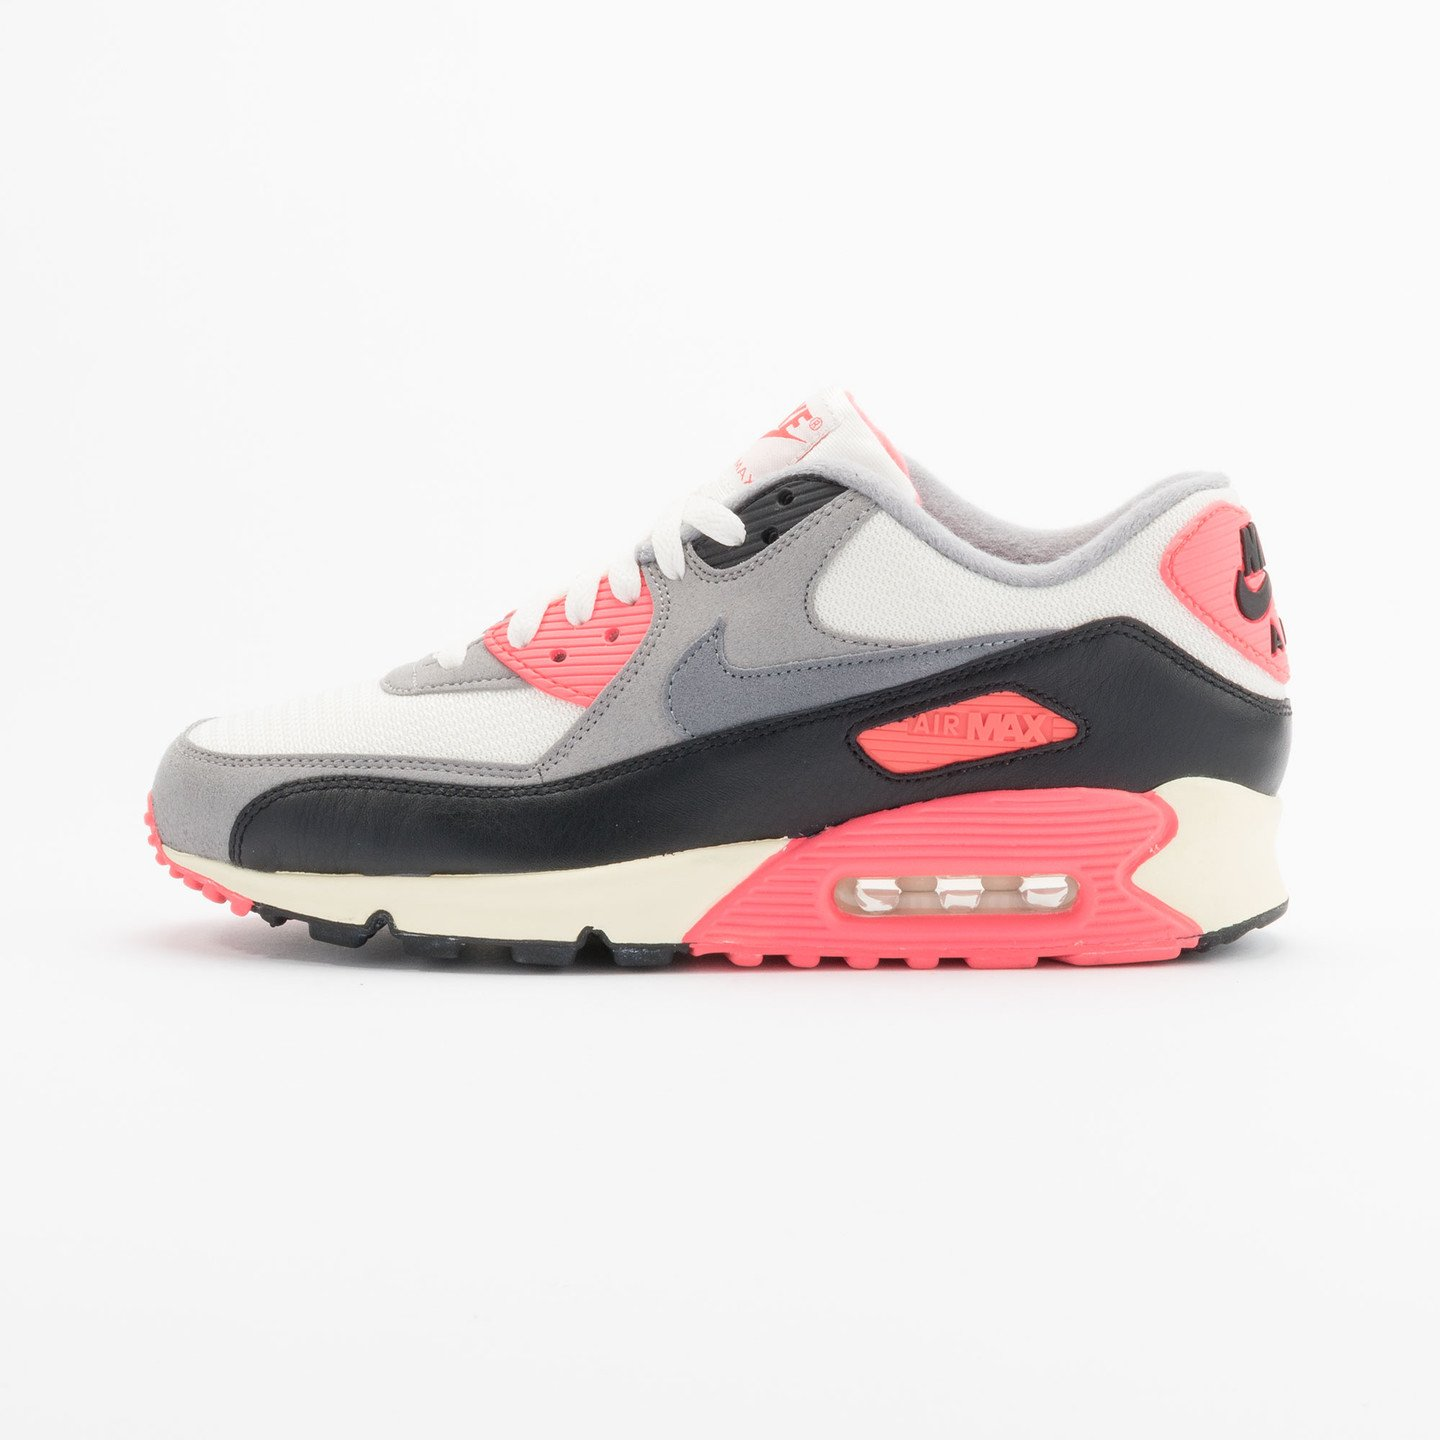 Nike Air Max 90 OG Vintage Infrared Sail/Cool Grey-Mdm Grey-Infrrd 543361-161-45